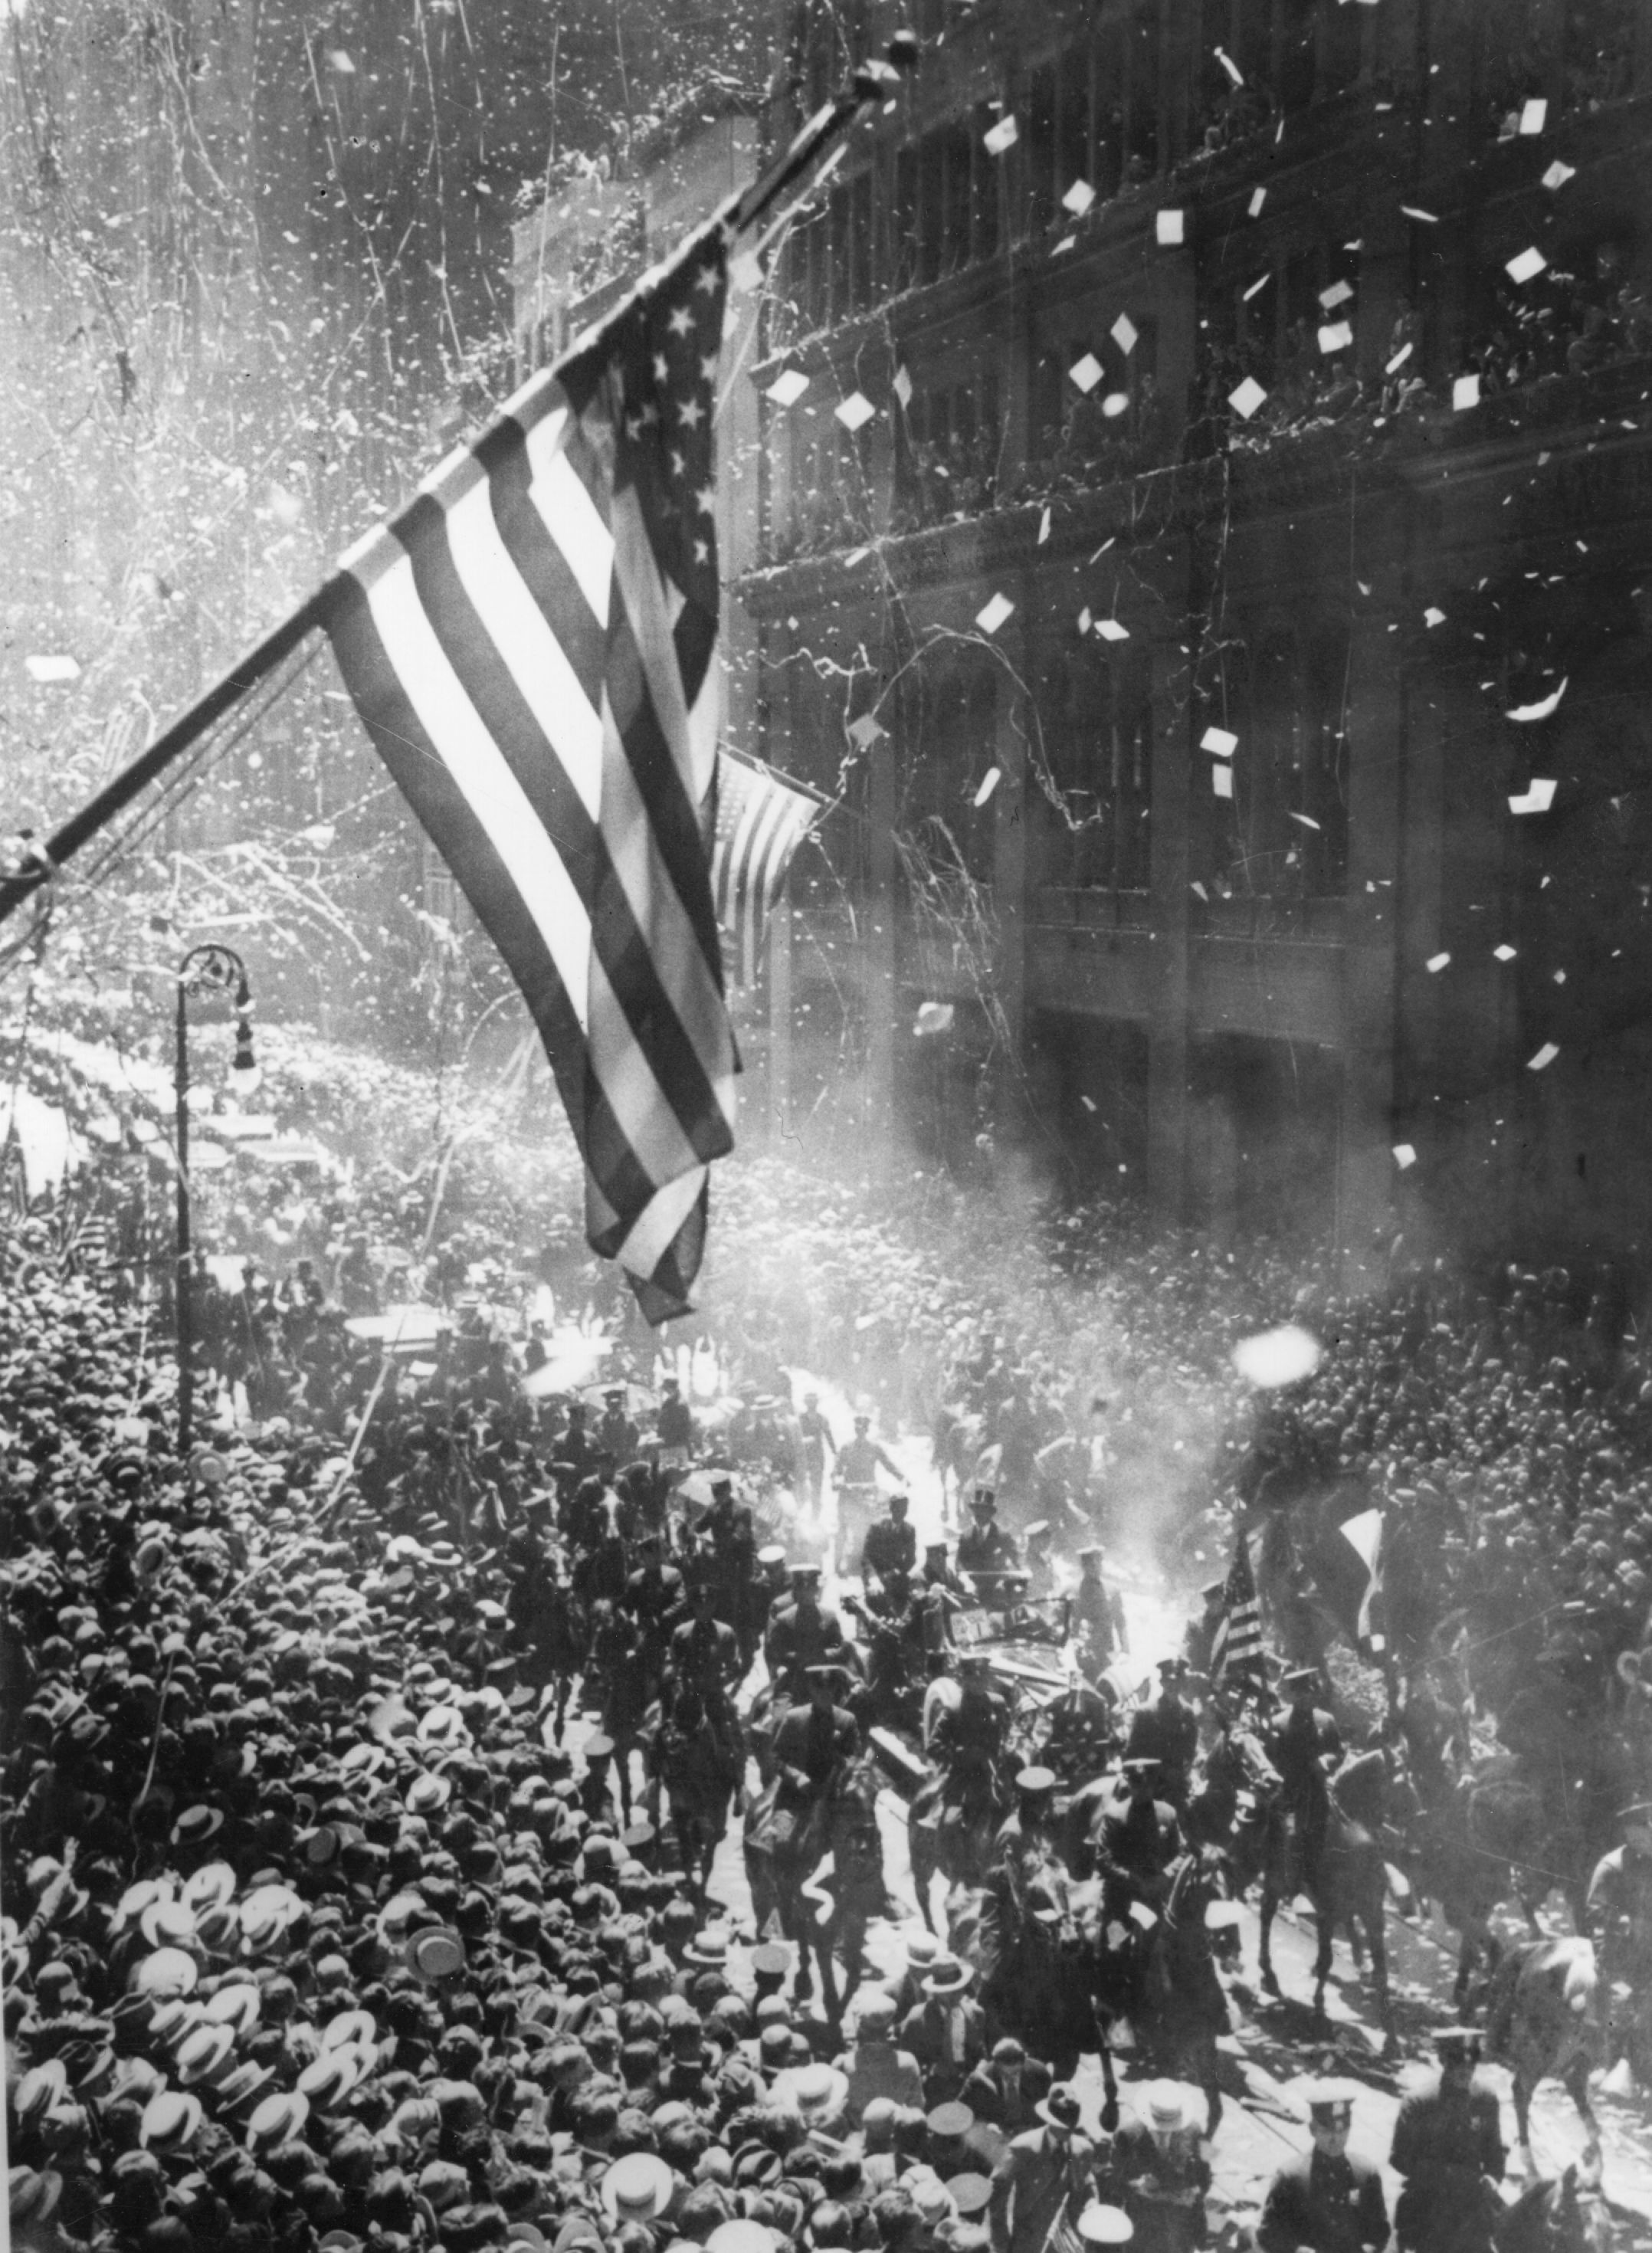 The tickertape parade in New York on June 13, 1927, following Charles Lindbergh's arrival after his solo flight across the Atlantic. (Photo by Central Press/Getty Images)